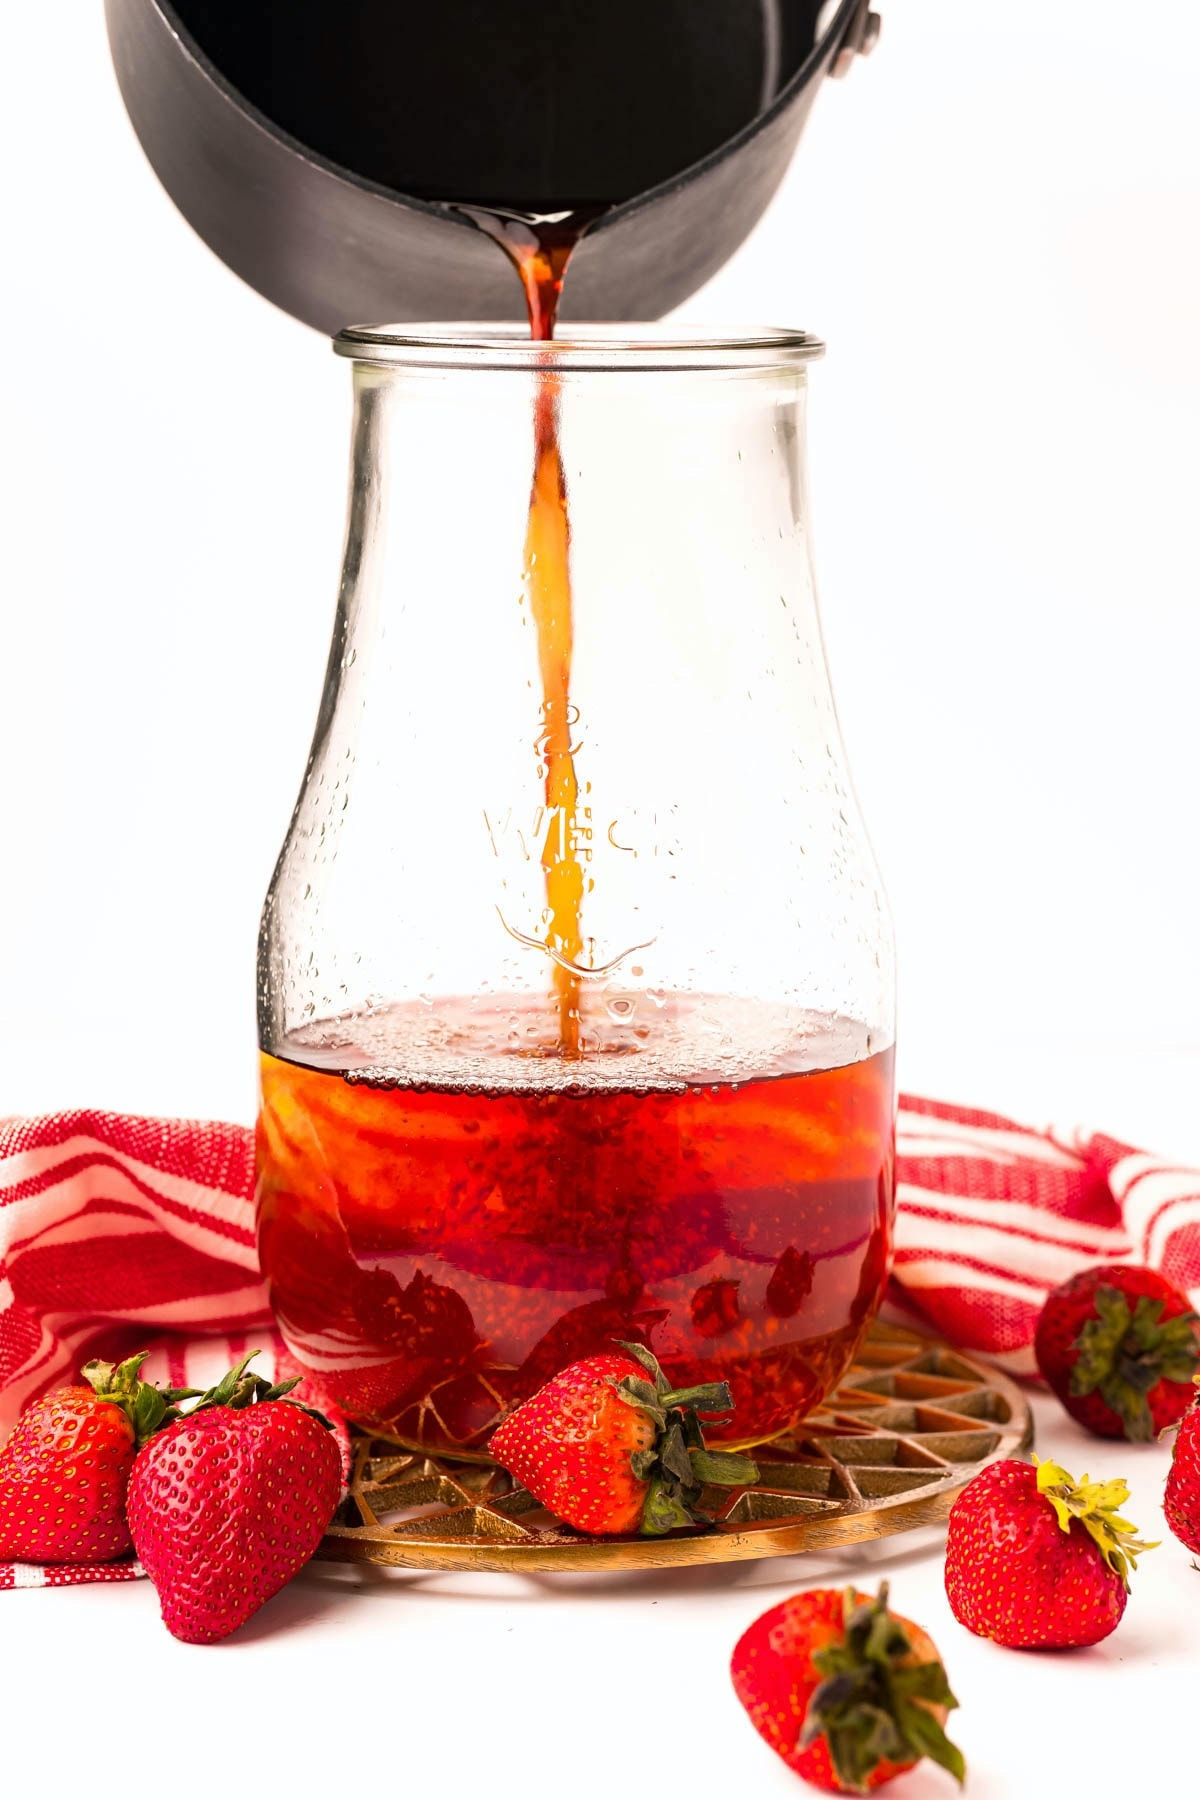 pour tea into another glass bottle